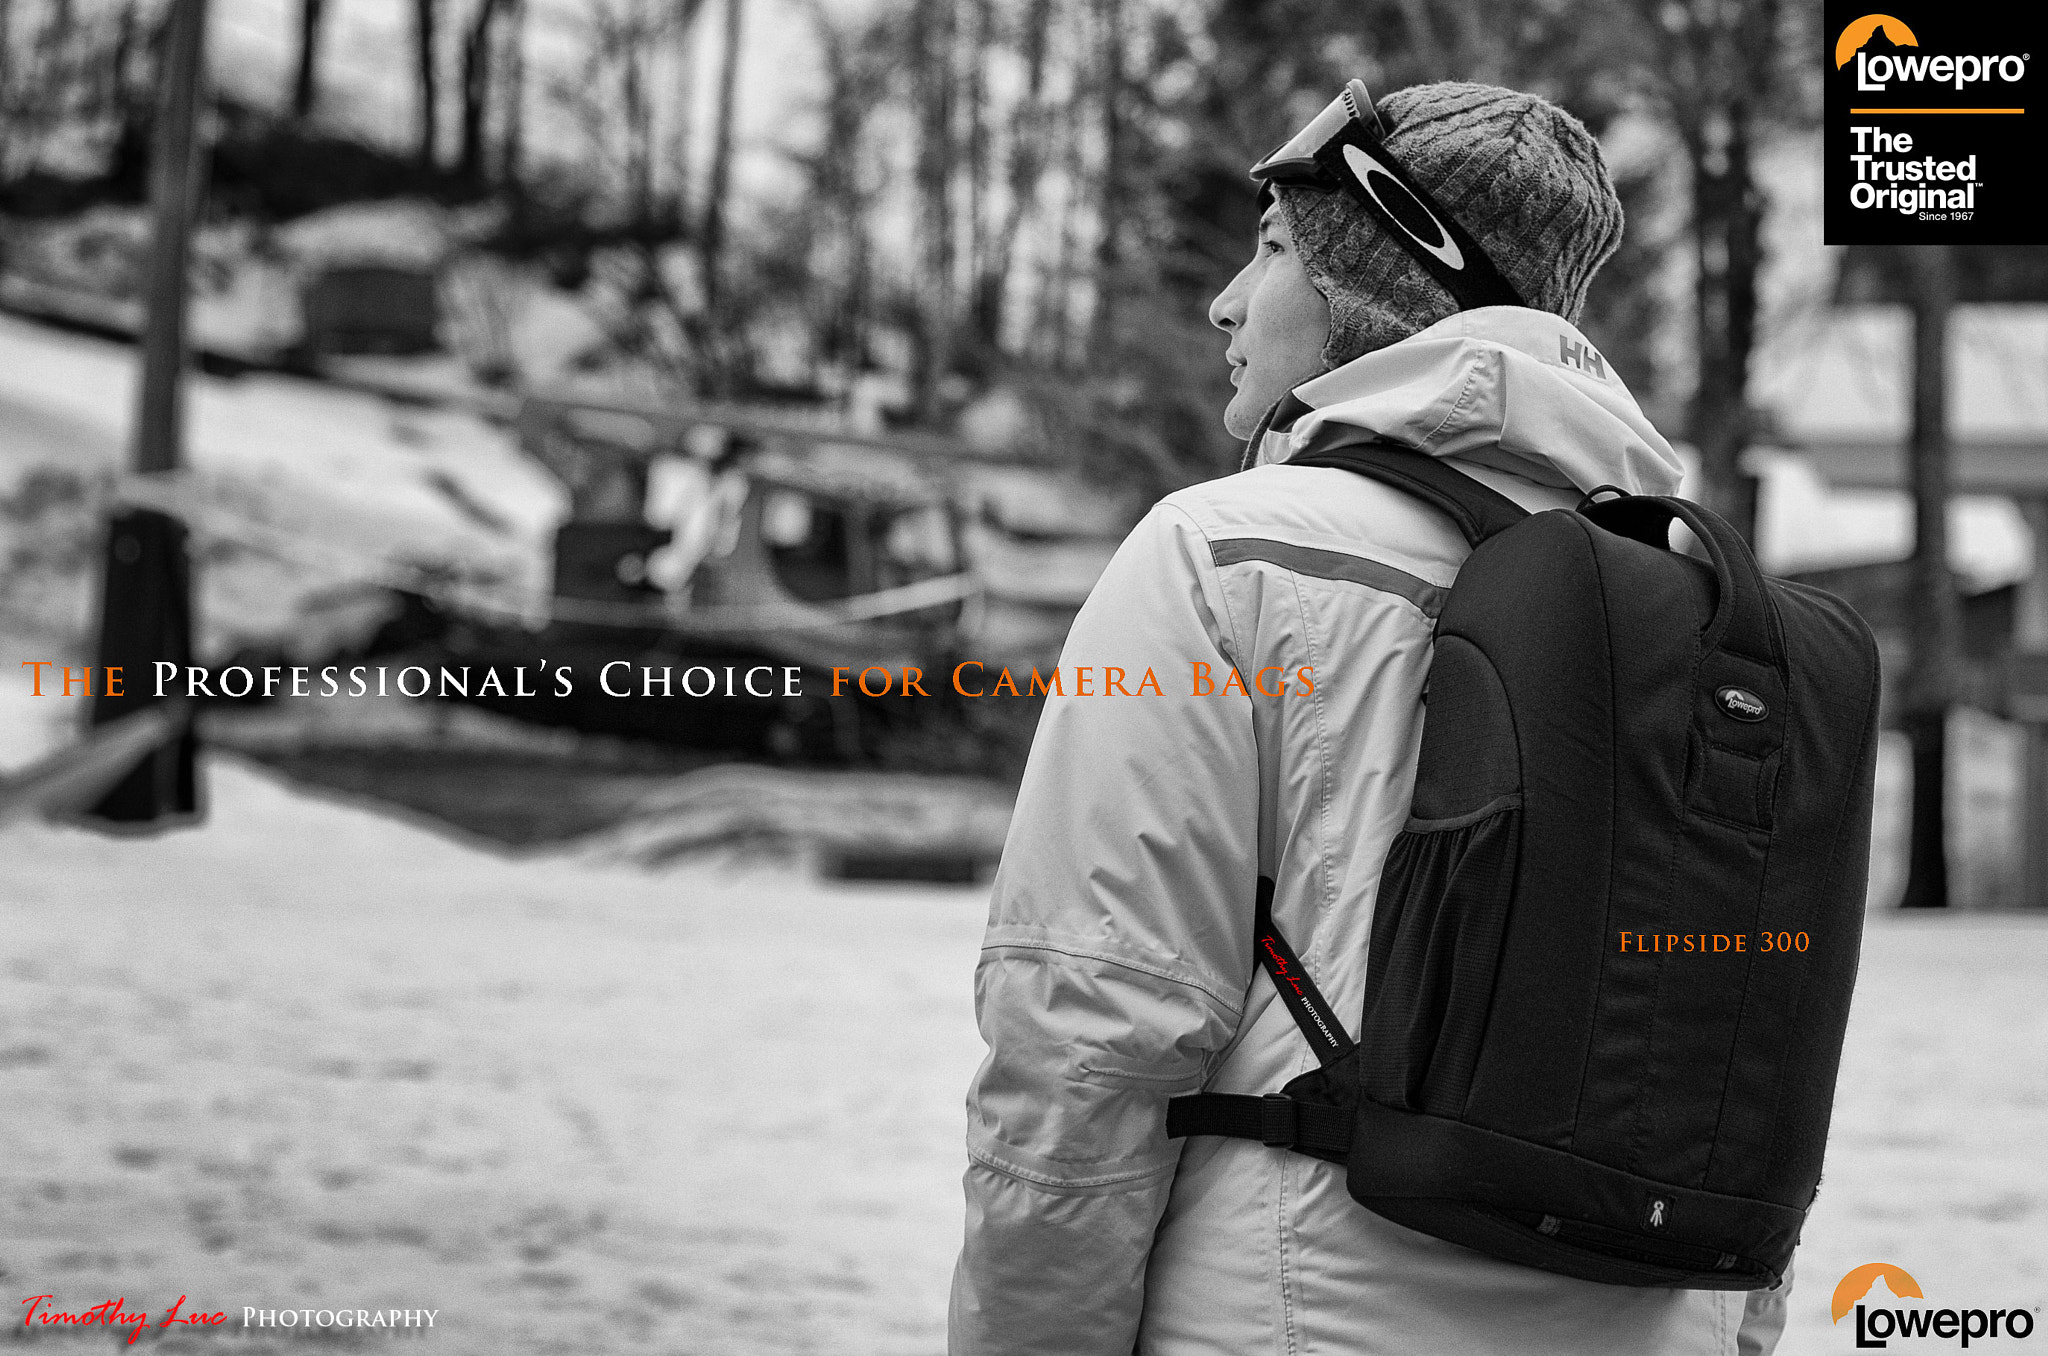 Photograph Lowepro Ad by Timothy Luc on 500px